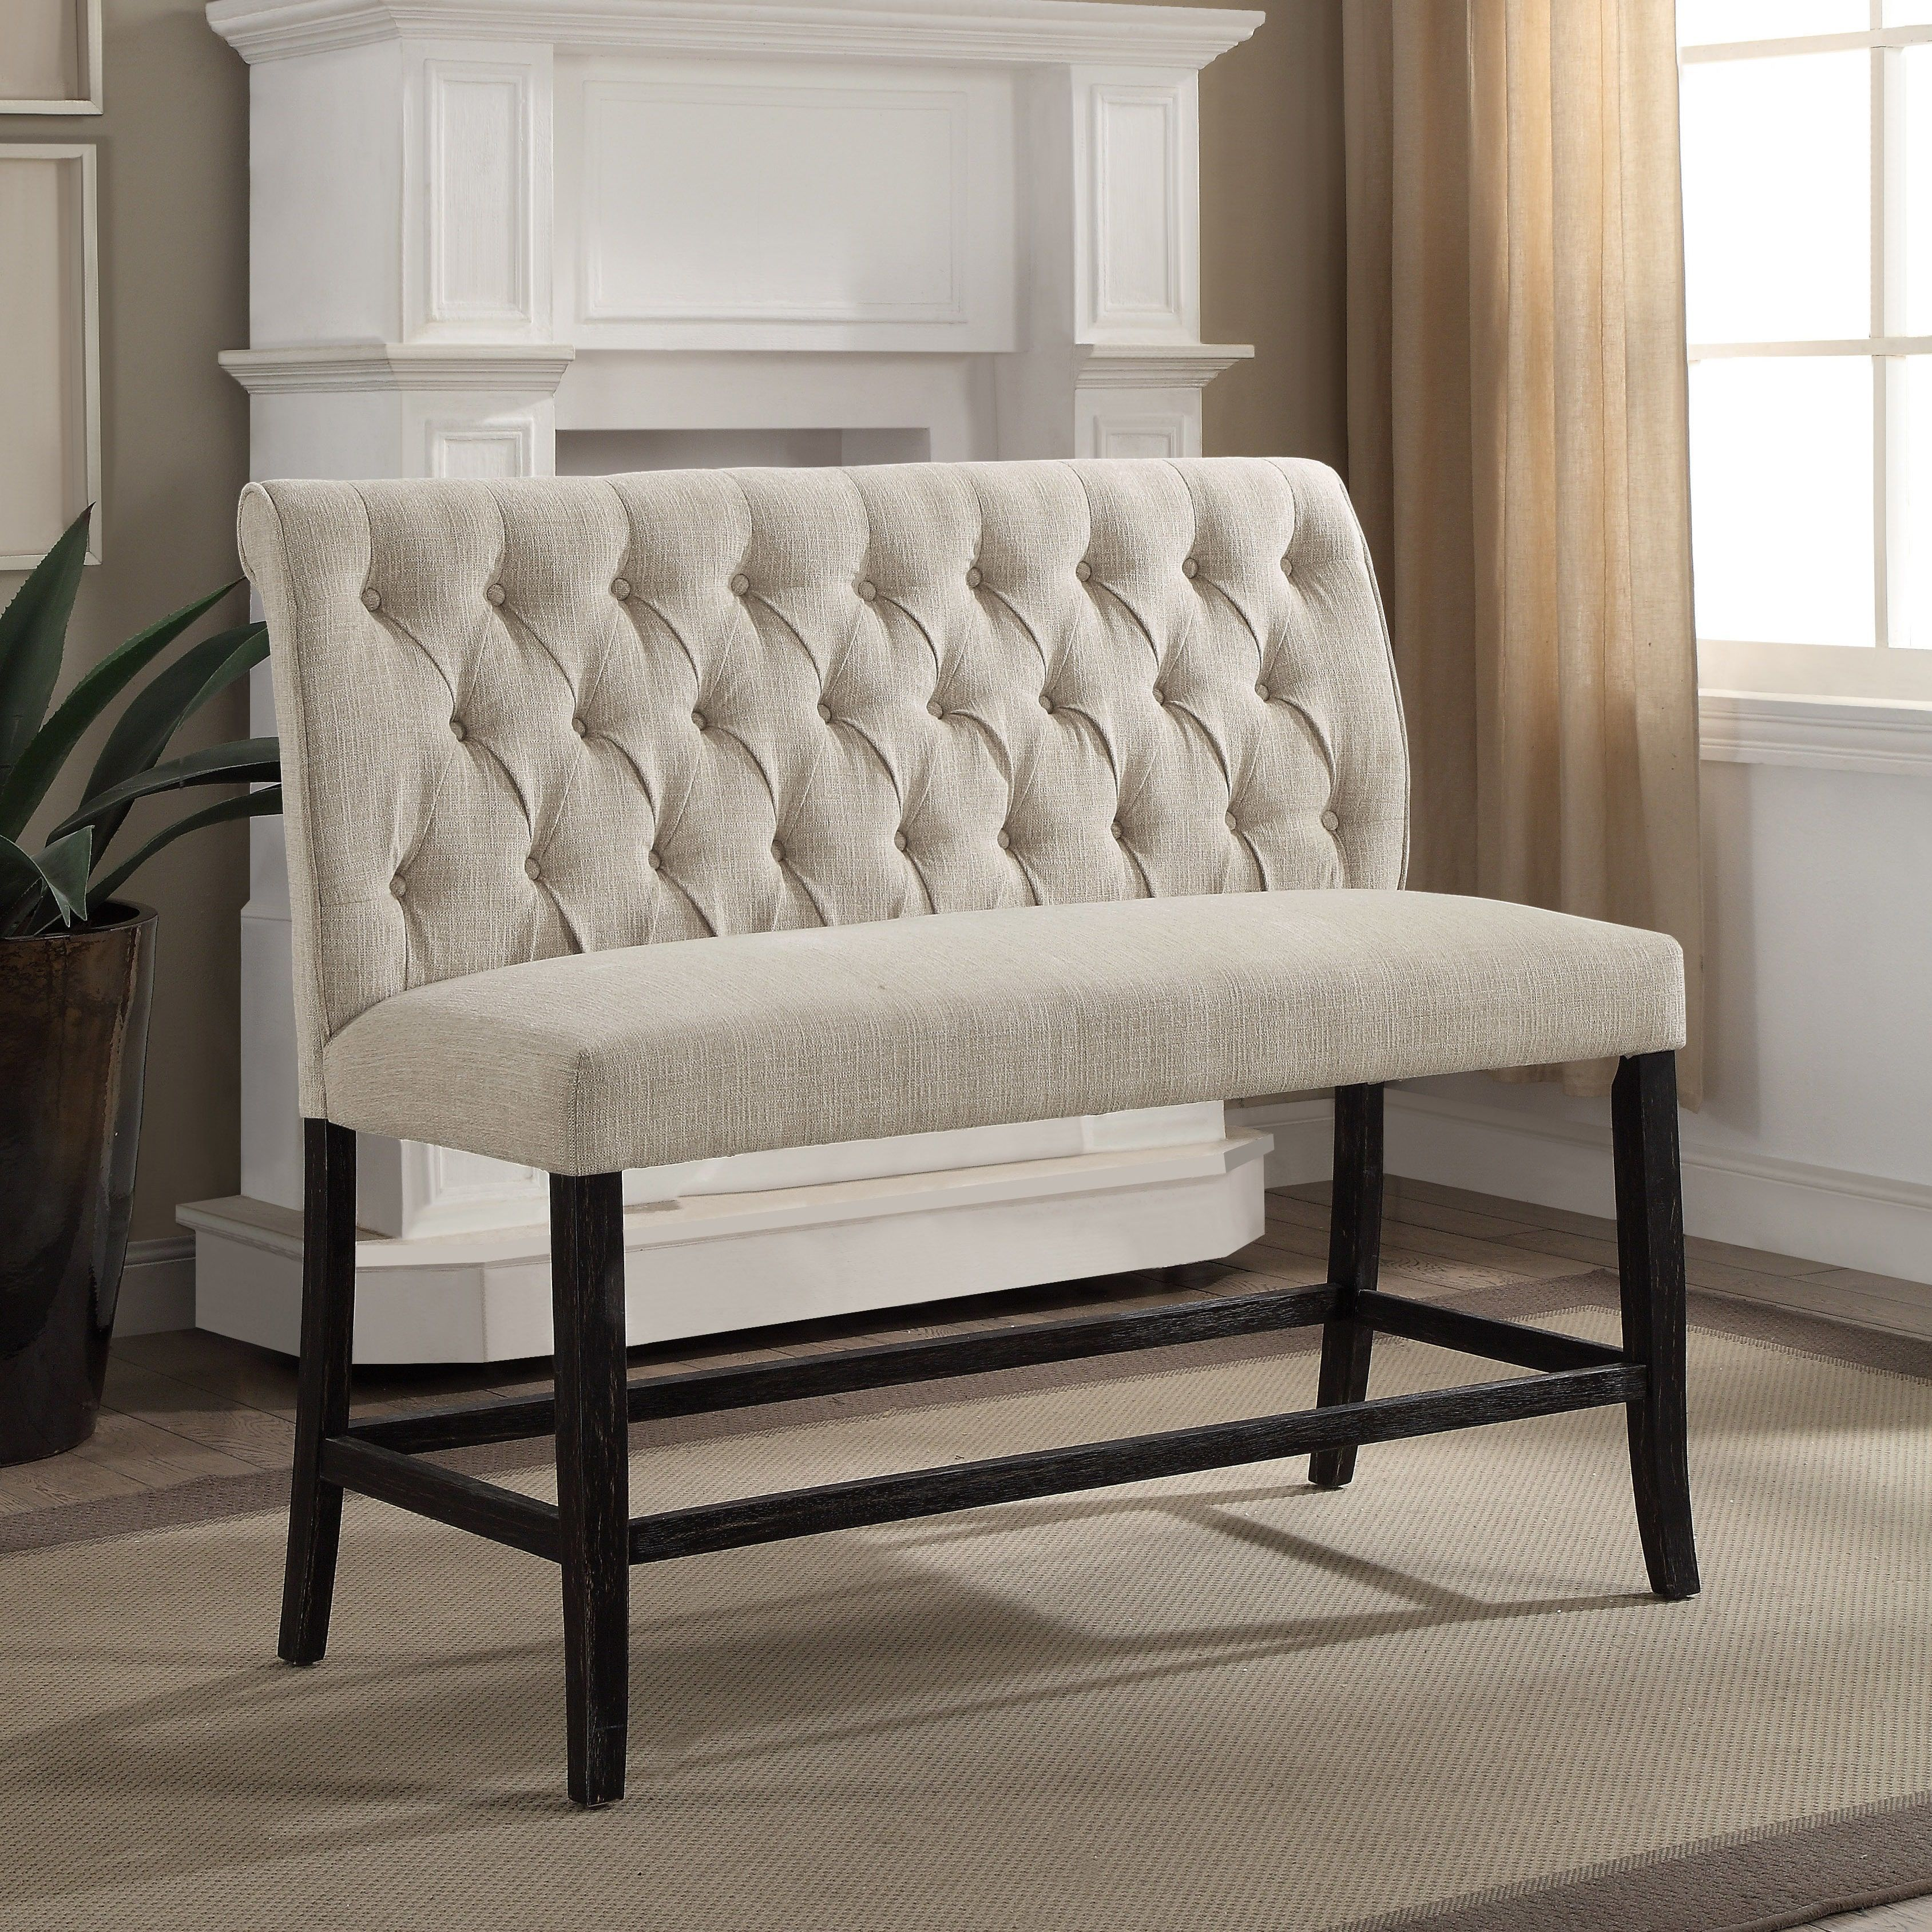 home tufted settee today jennifer garden bench taylor izzy product free overstock shipping